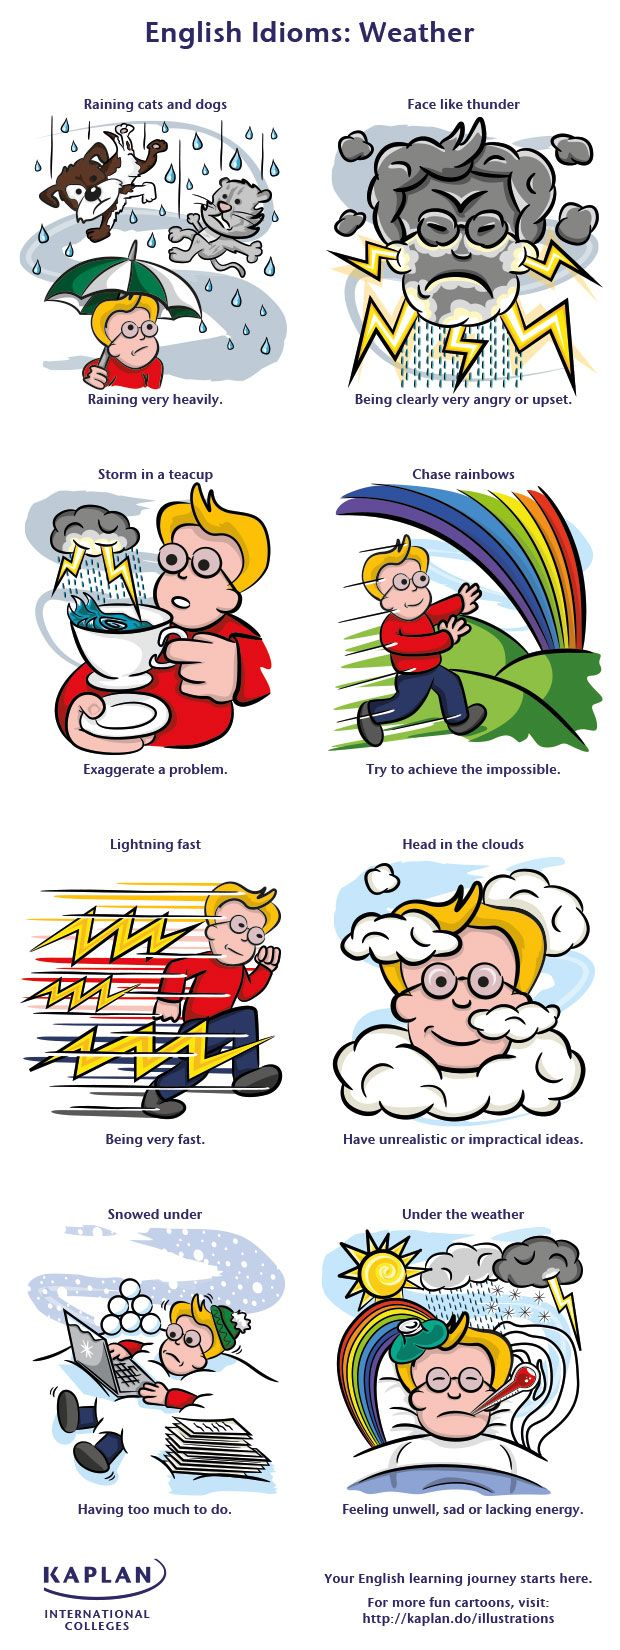 weather related idioms and phrases english lessons discover how to use weather idioms our fun illustration learn to speak english like a native kaplan international